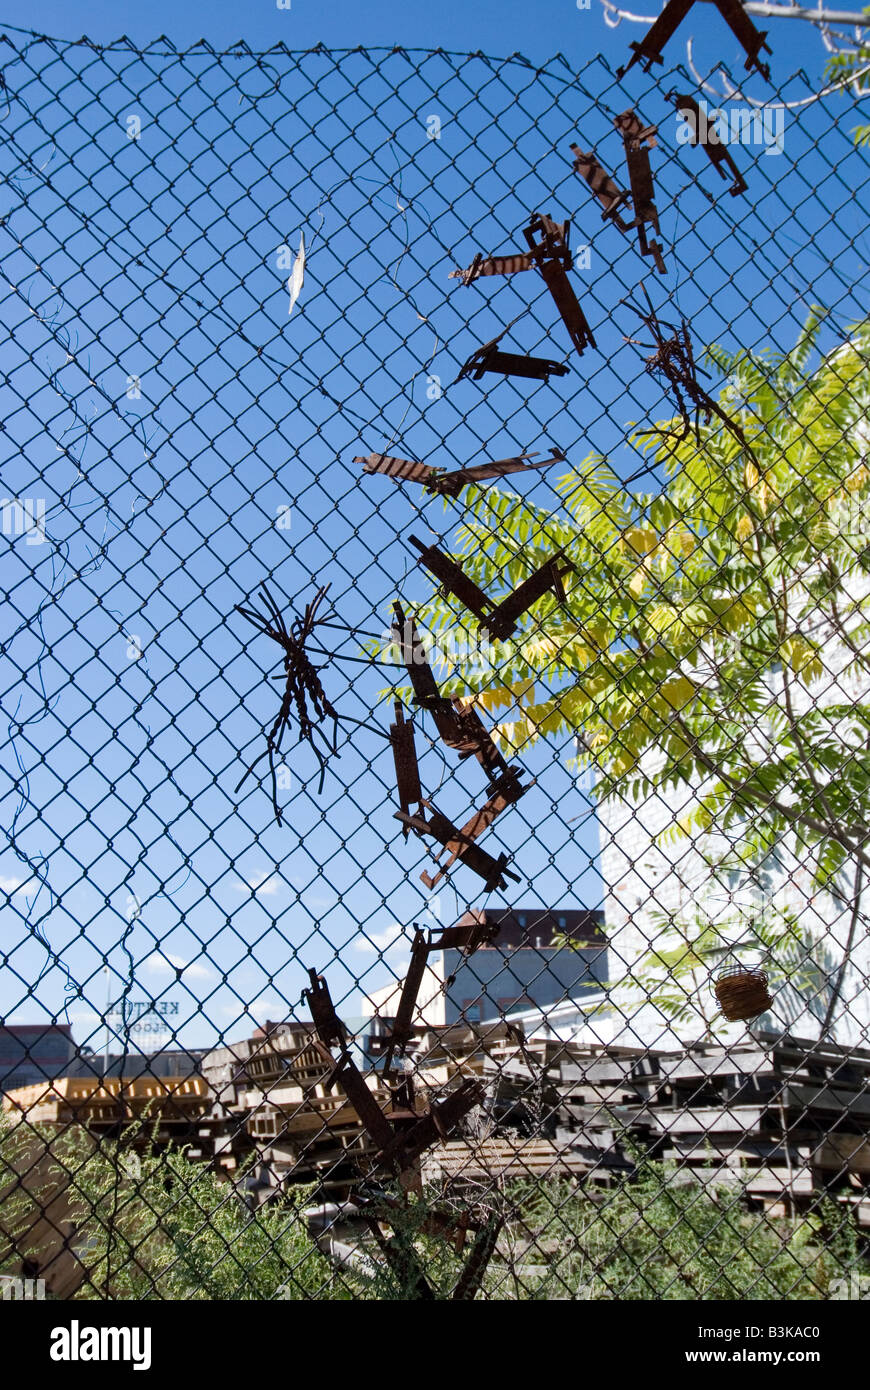 Wire Fence Art Metal Stock Photos & Wire Fence Art Metal Stock ...